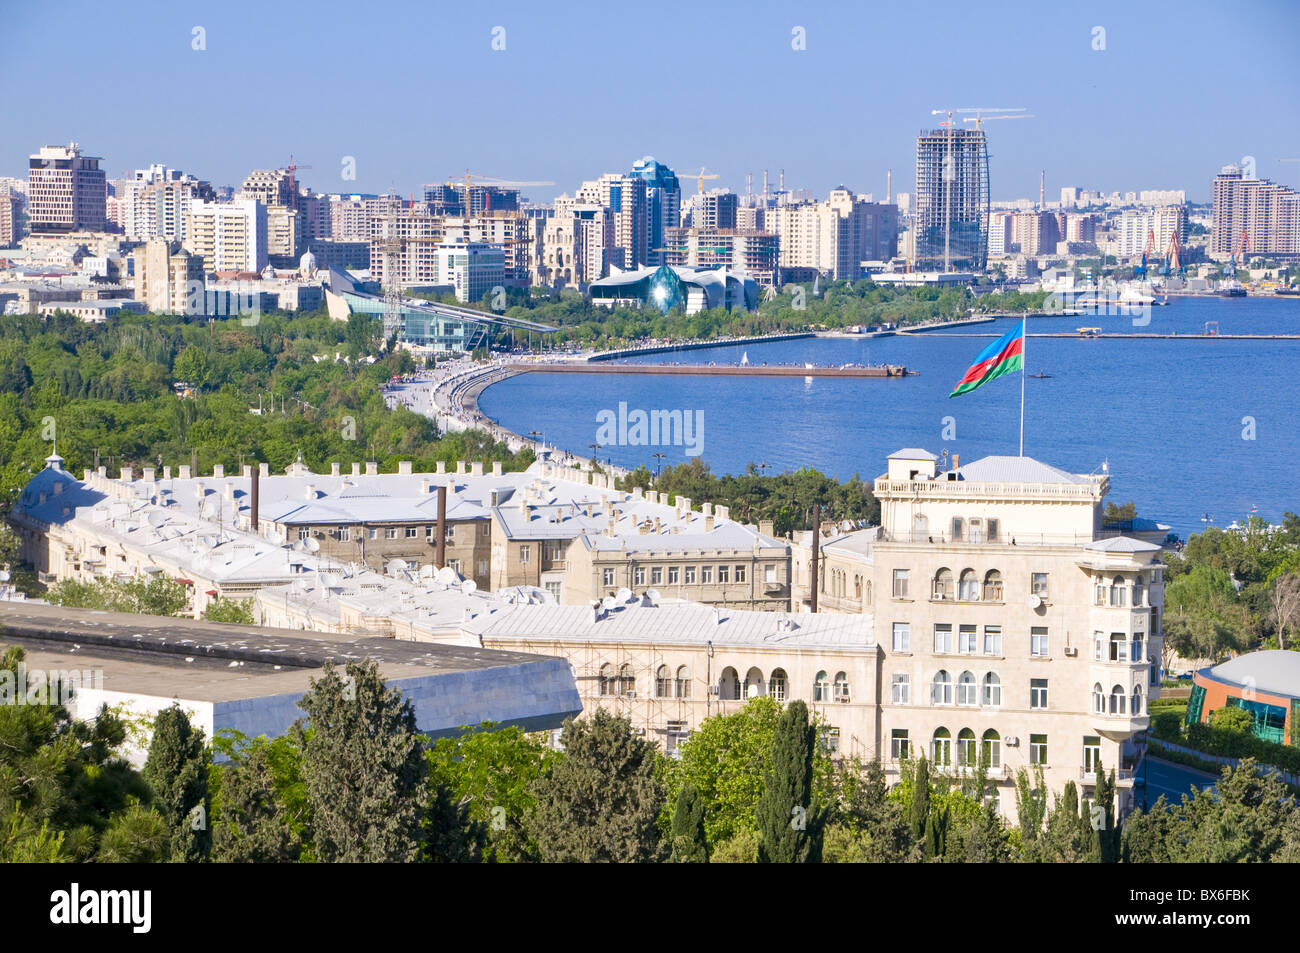 View over Baku Bay, Baku, Azerbaijan, Central Asia, Asia - Stock Image